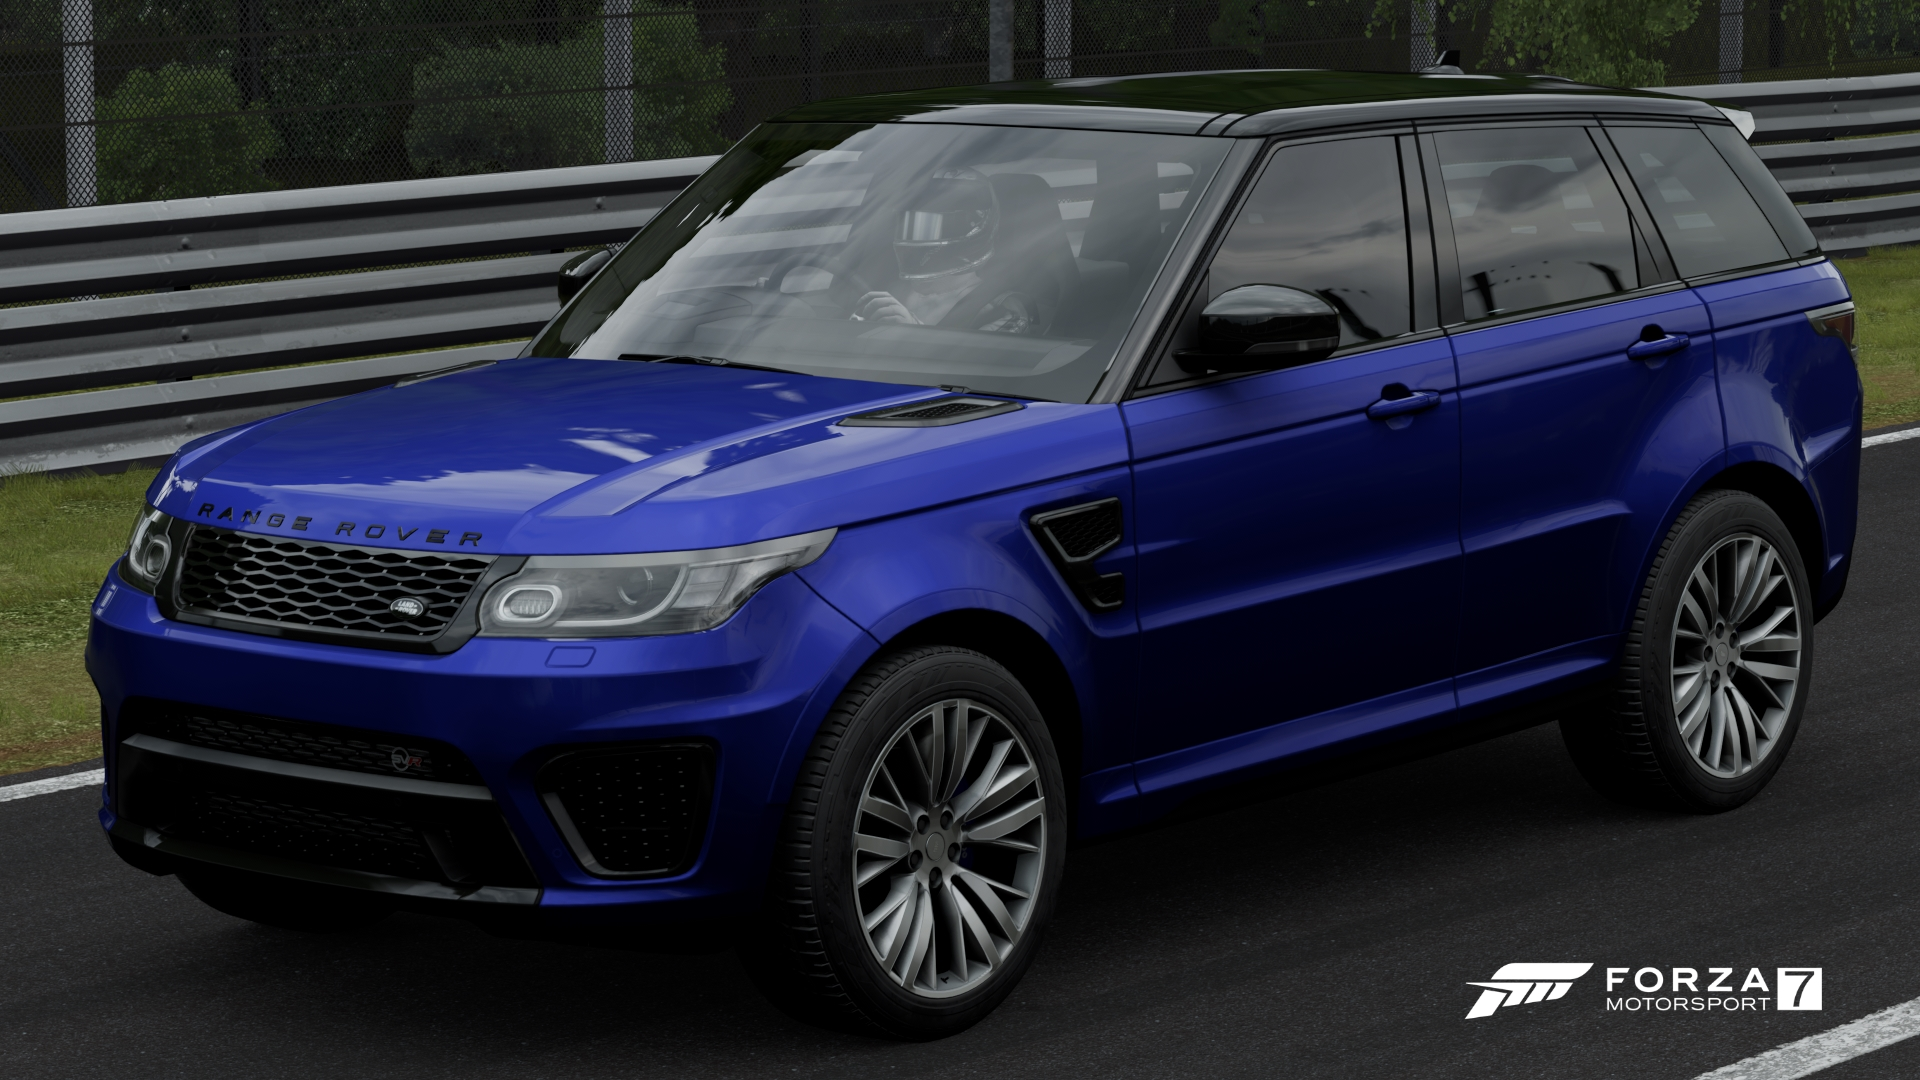 https://vignette.wikia.nocookie.net/forzamotorsport/images/2/22/FM7_LR_Range_Rover_15_Front.jpg/revision/latest?cb=20180209155422